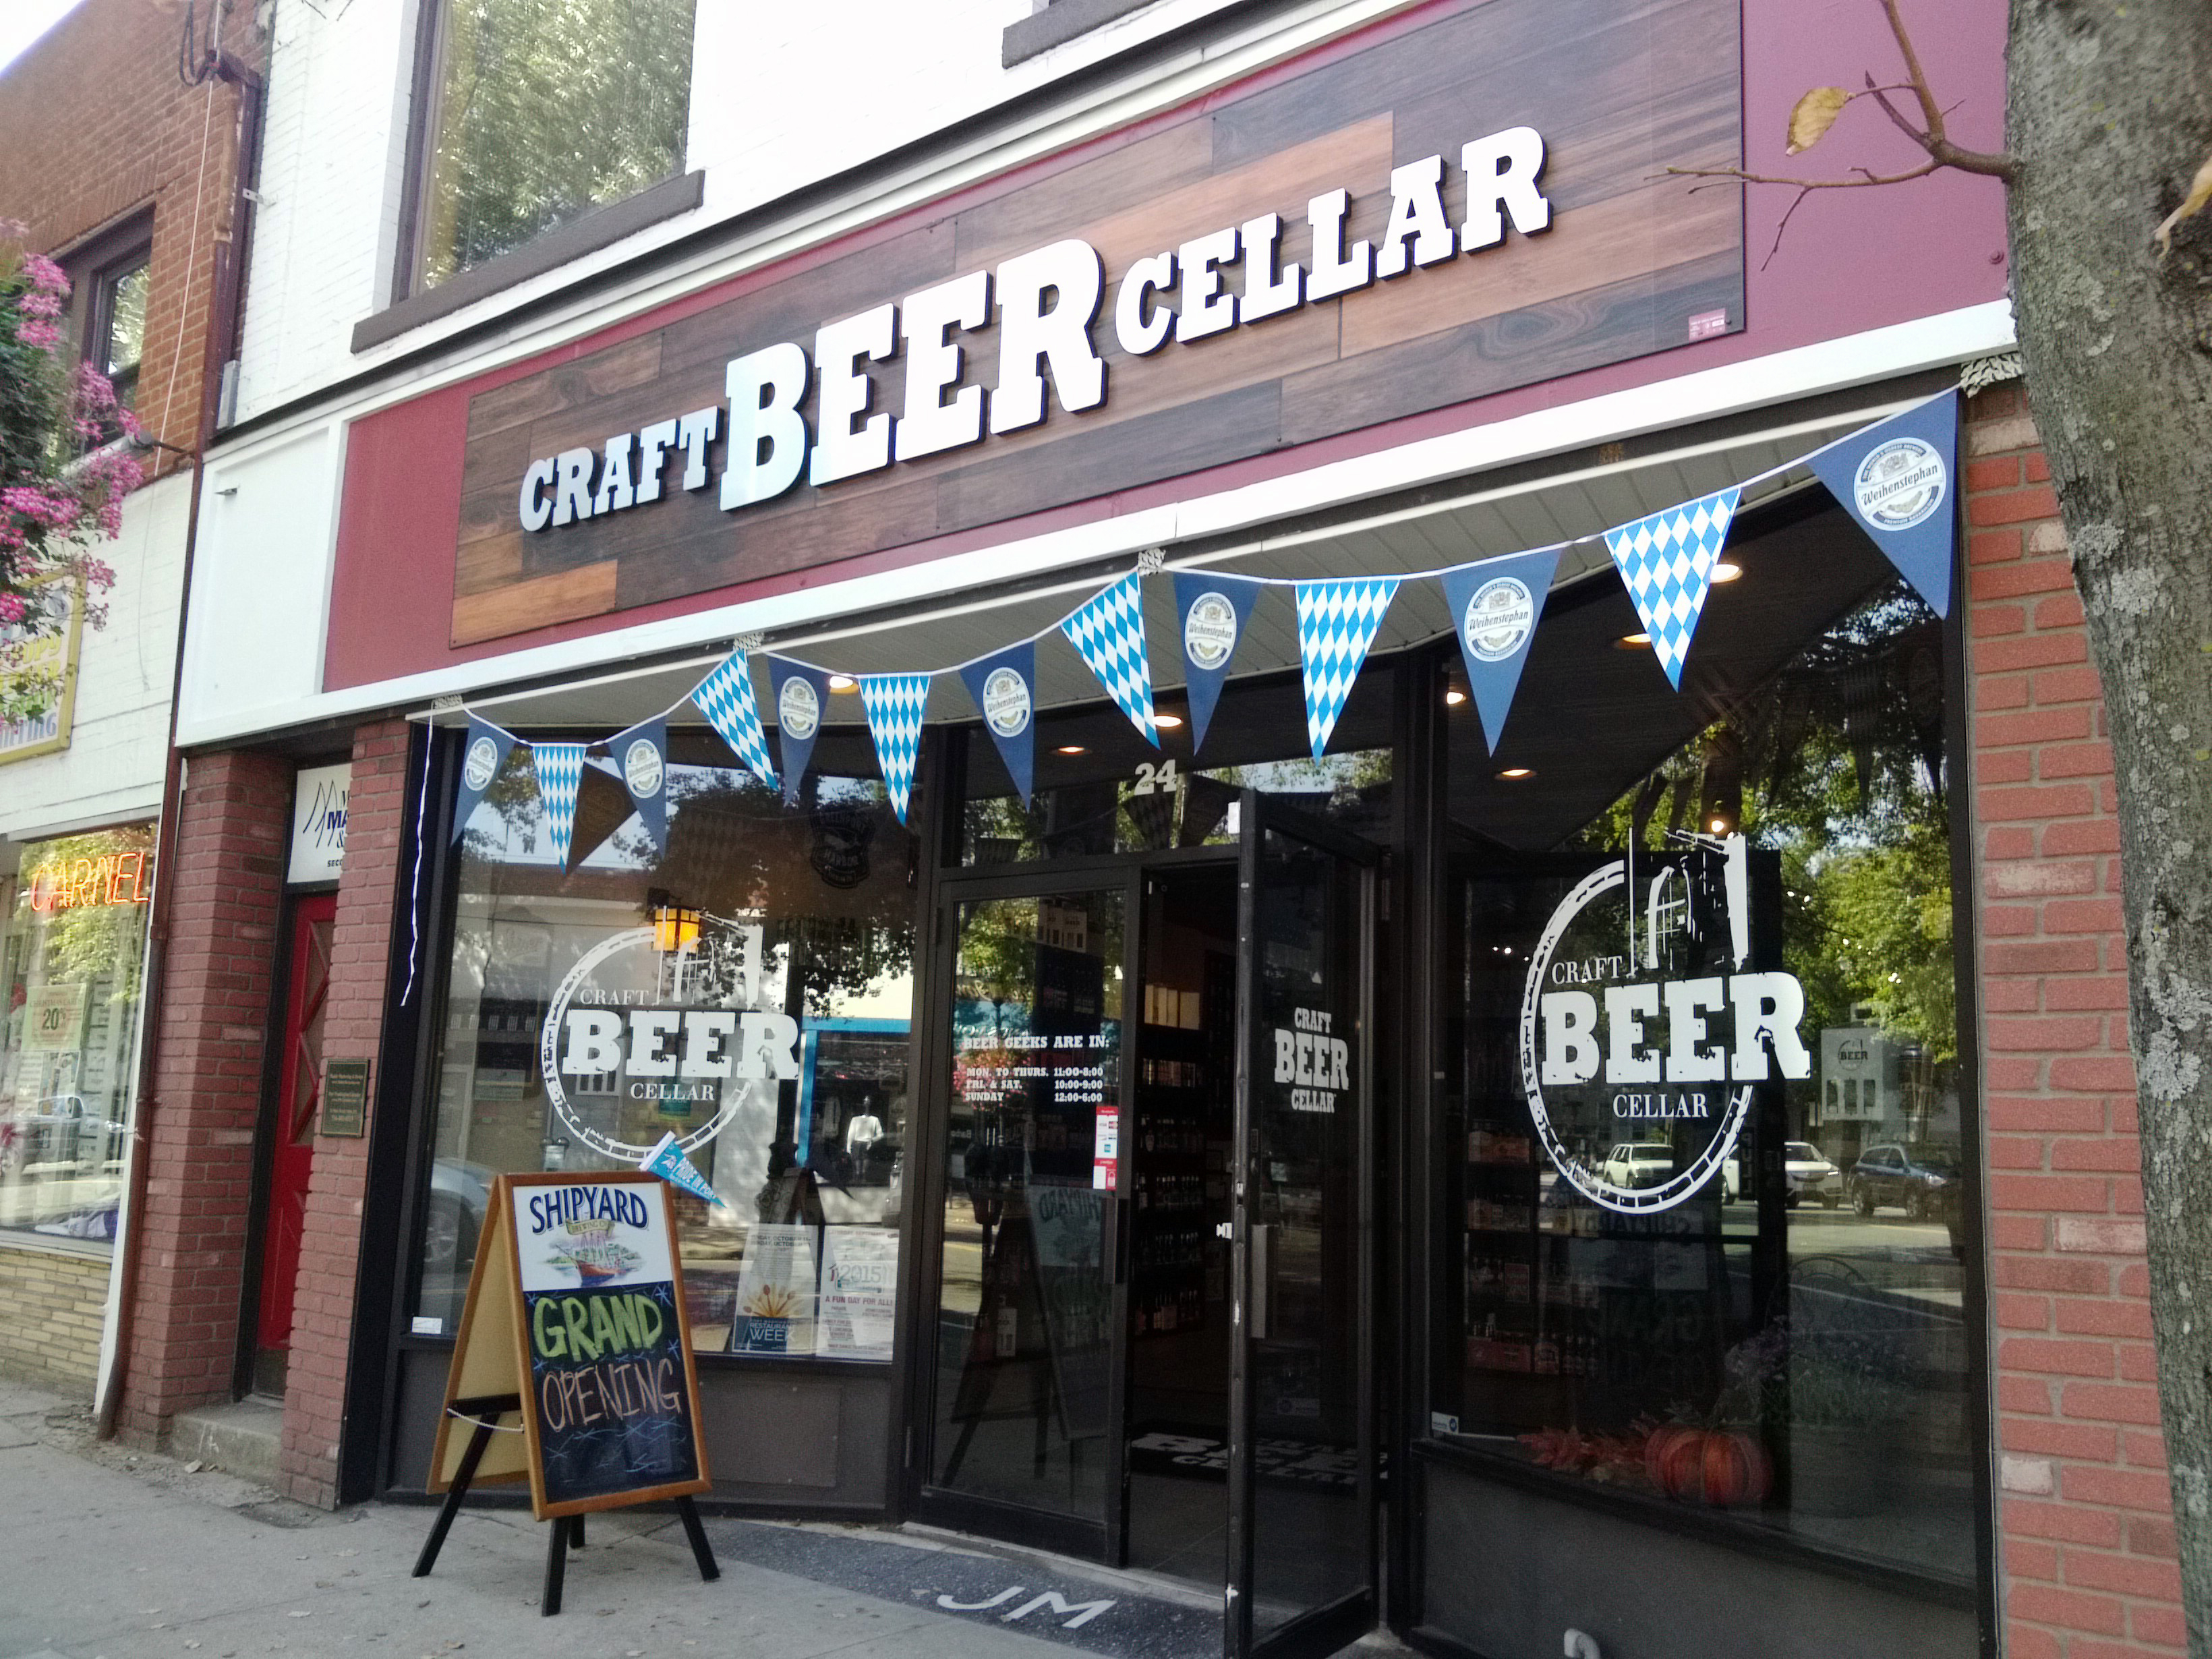 & Craft Beer Cellar Opens on Long Island | The Outcask